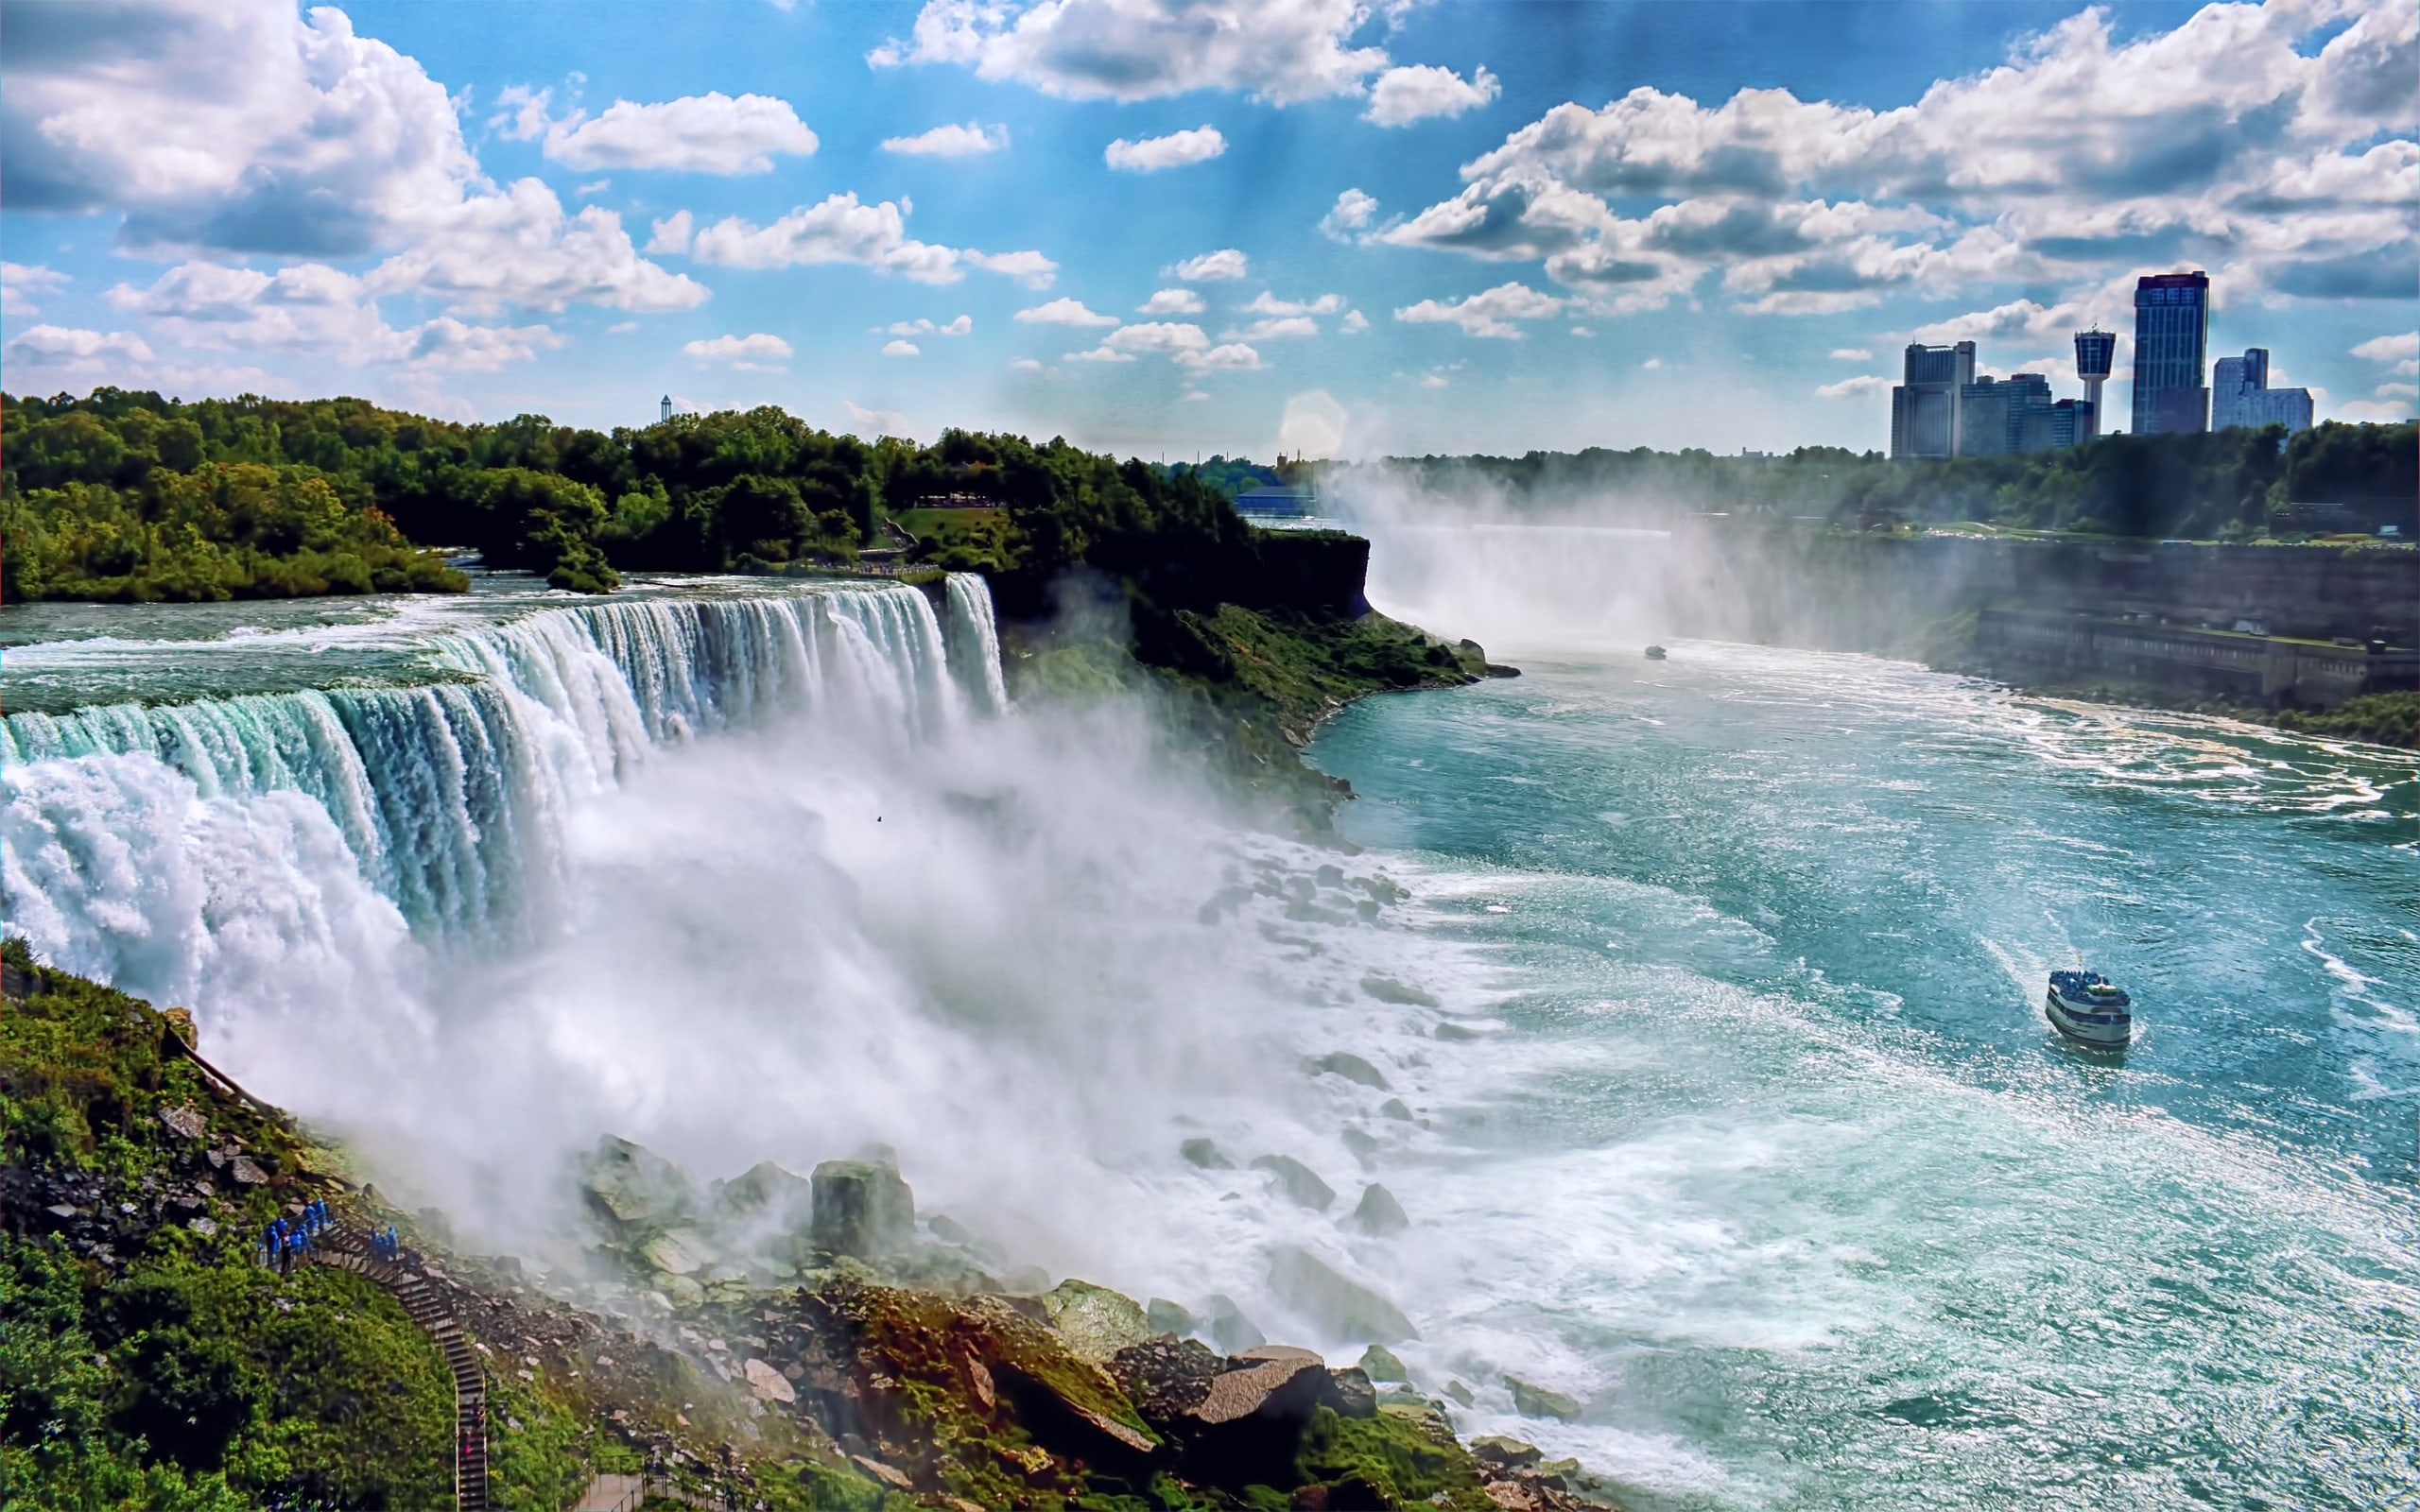 Travel Background Hd Wallpapers Free Niagra Falls Niagara Falls Hd Wallpapers 7wallpapers Net